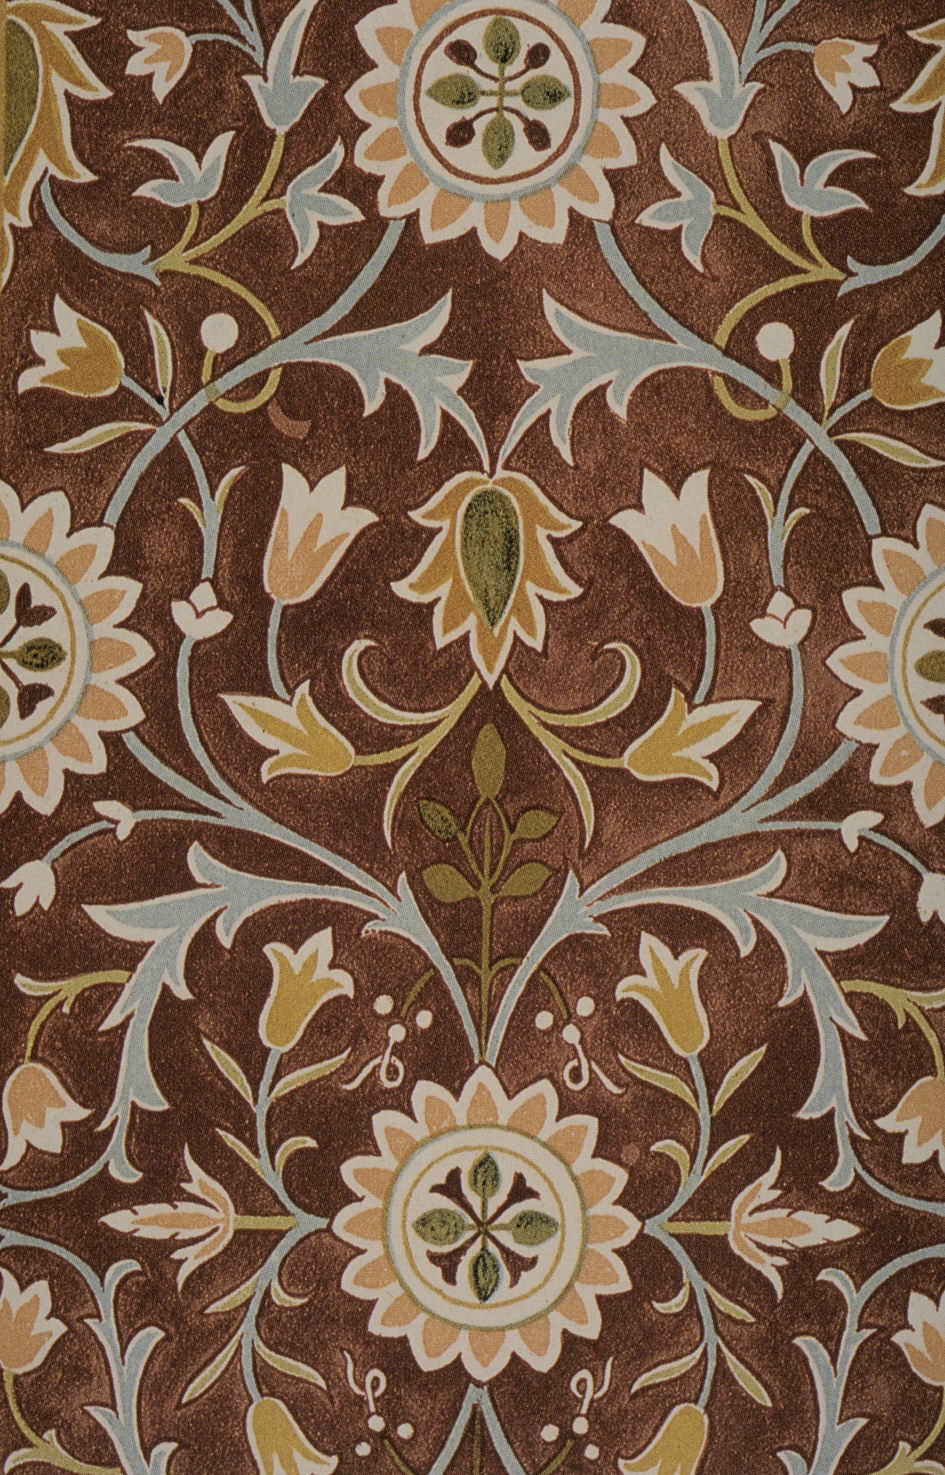 Exceptionnel File:Morris Little Flower Carpet Design Detail